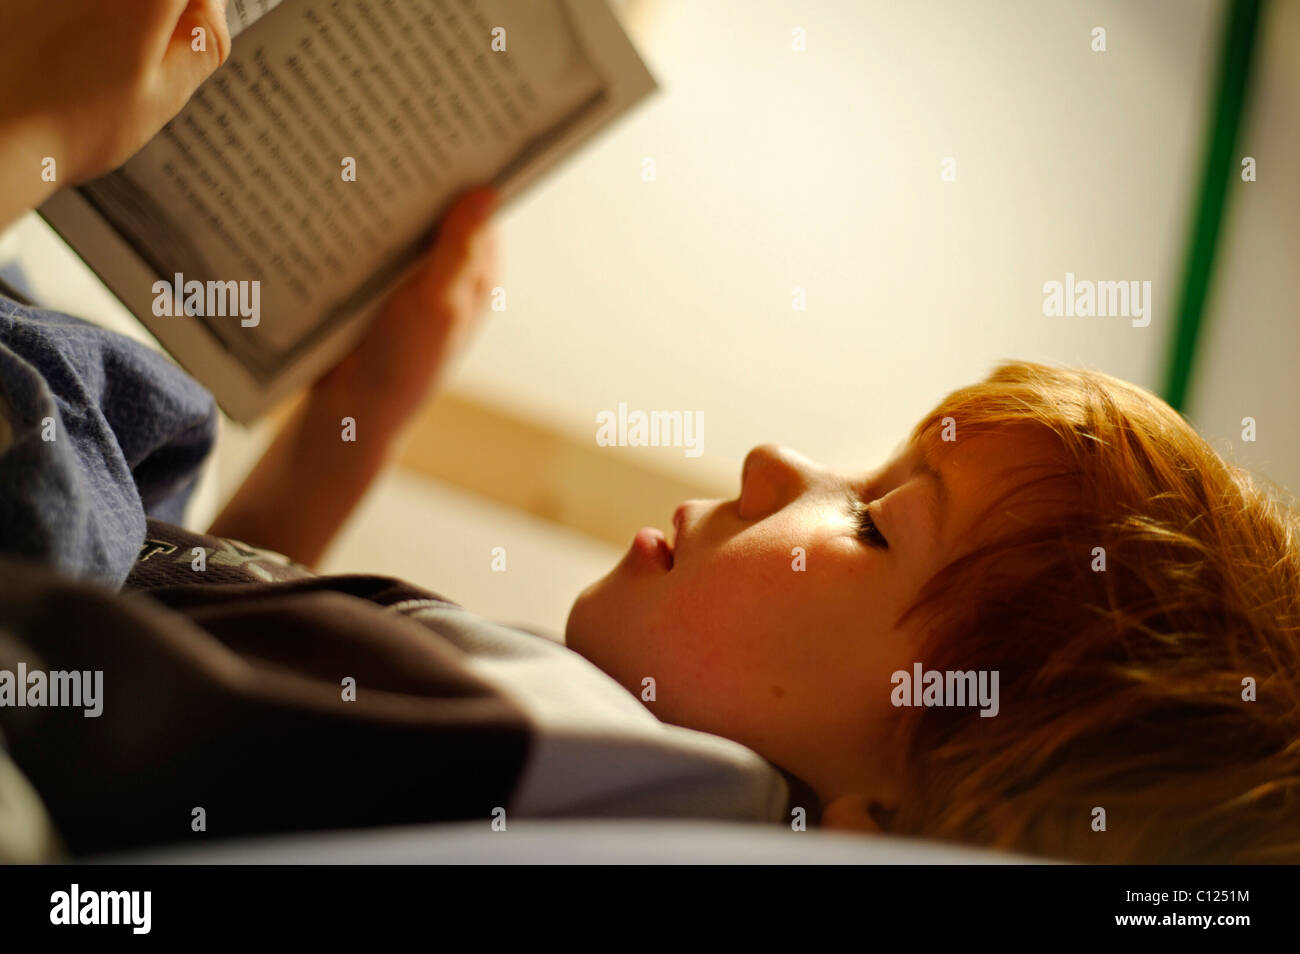 Child, boy reading in bed - Stock Image